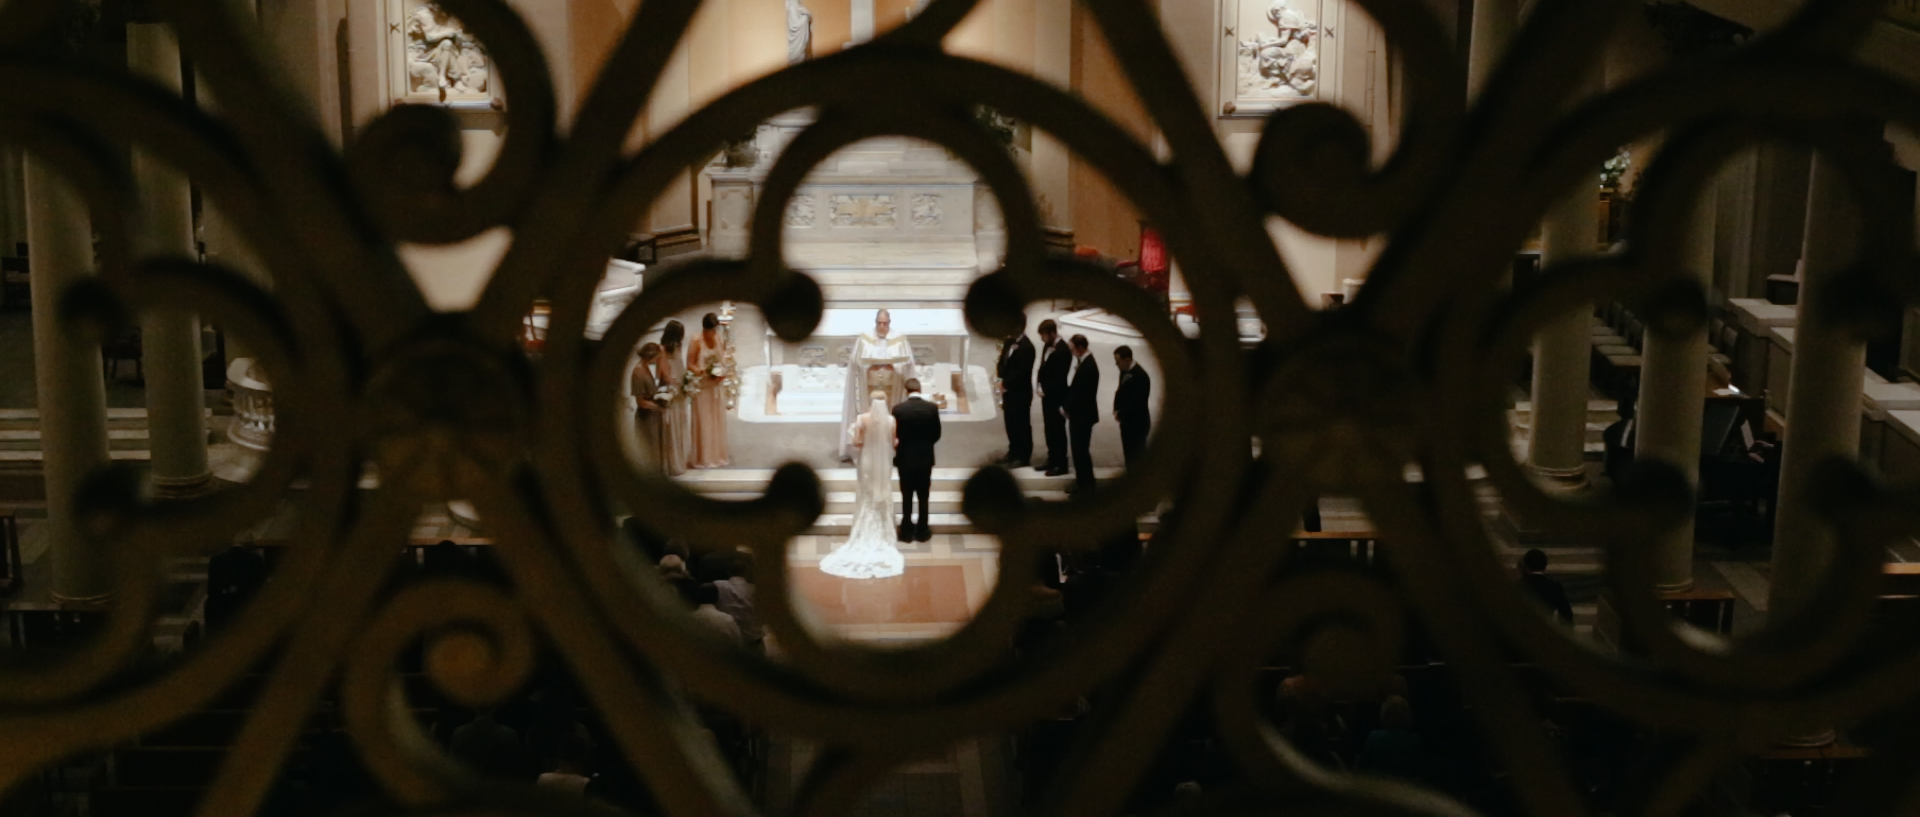 jaclyn-jamie-wedding-ceremony-cathedral-of-the-incarnation-nashville-wedding-videographer-amavi-films.png